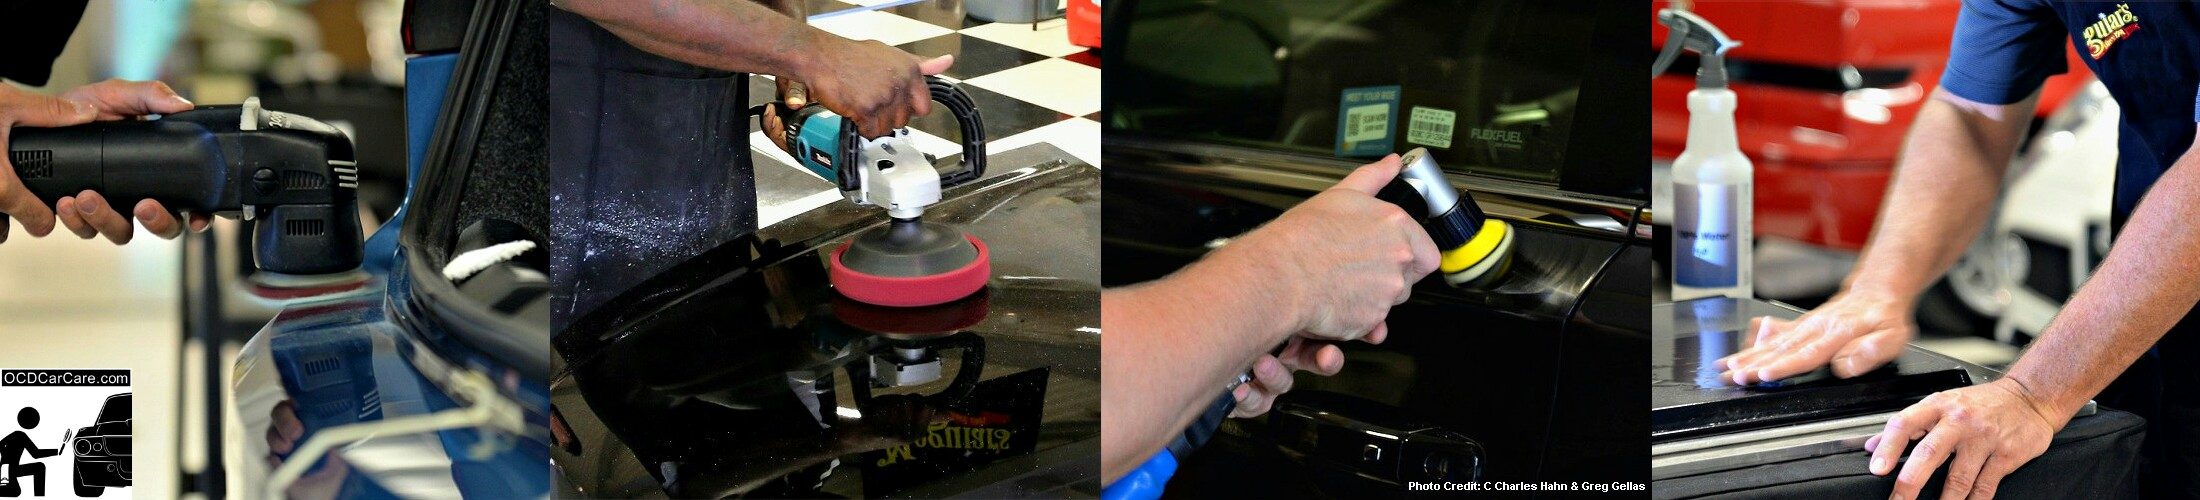 The many forms of paint correction taught by Christopher Brown of OCDCarCare during auto detailing training sessions.